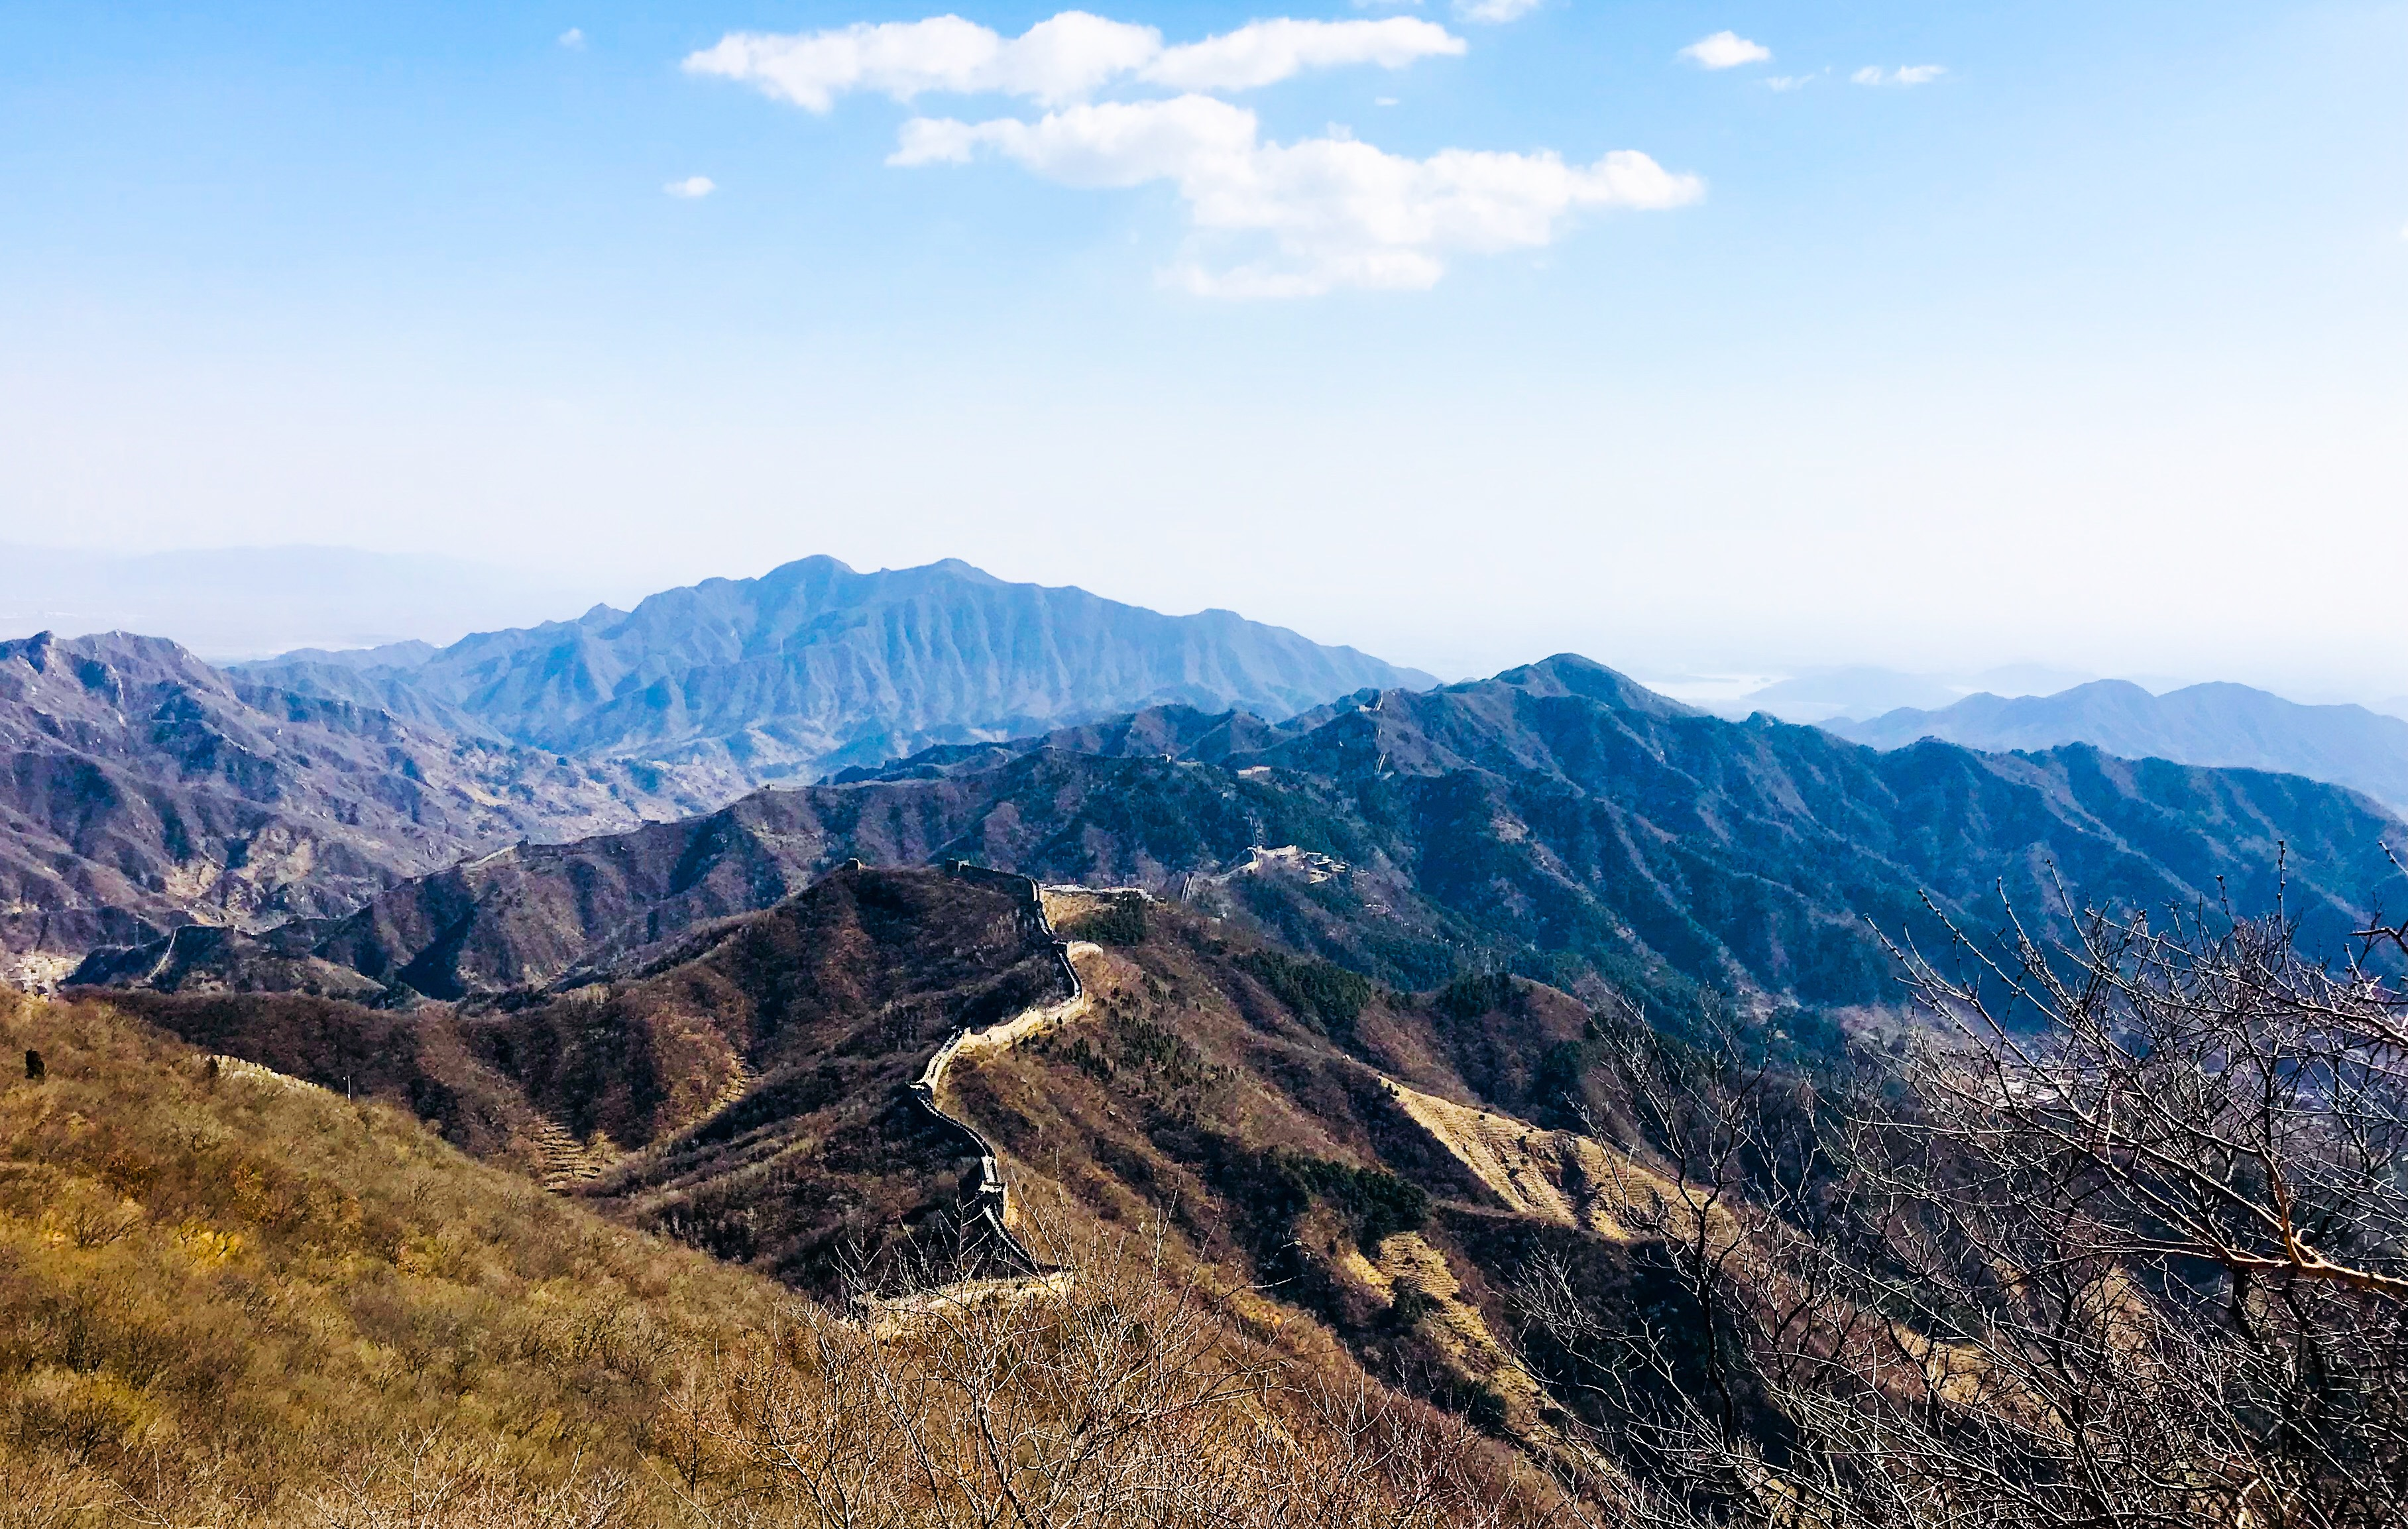 Image of the Great Wall of China in the mountains.